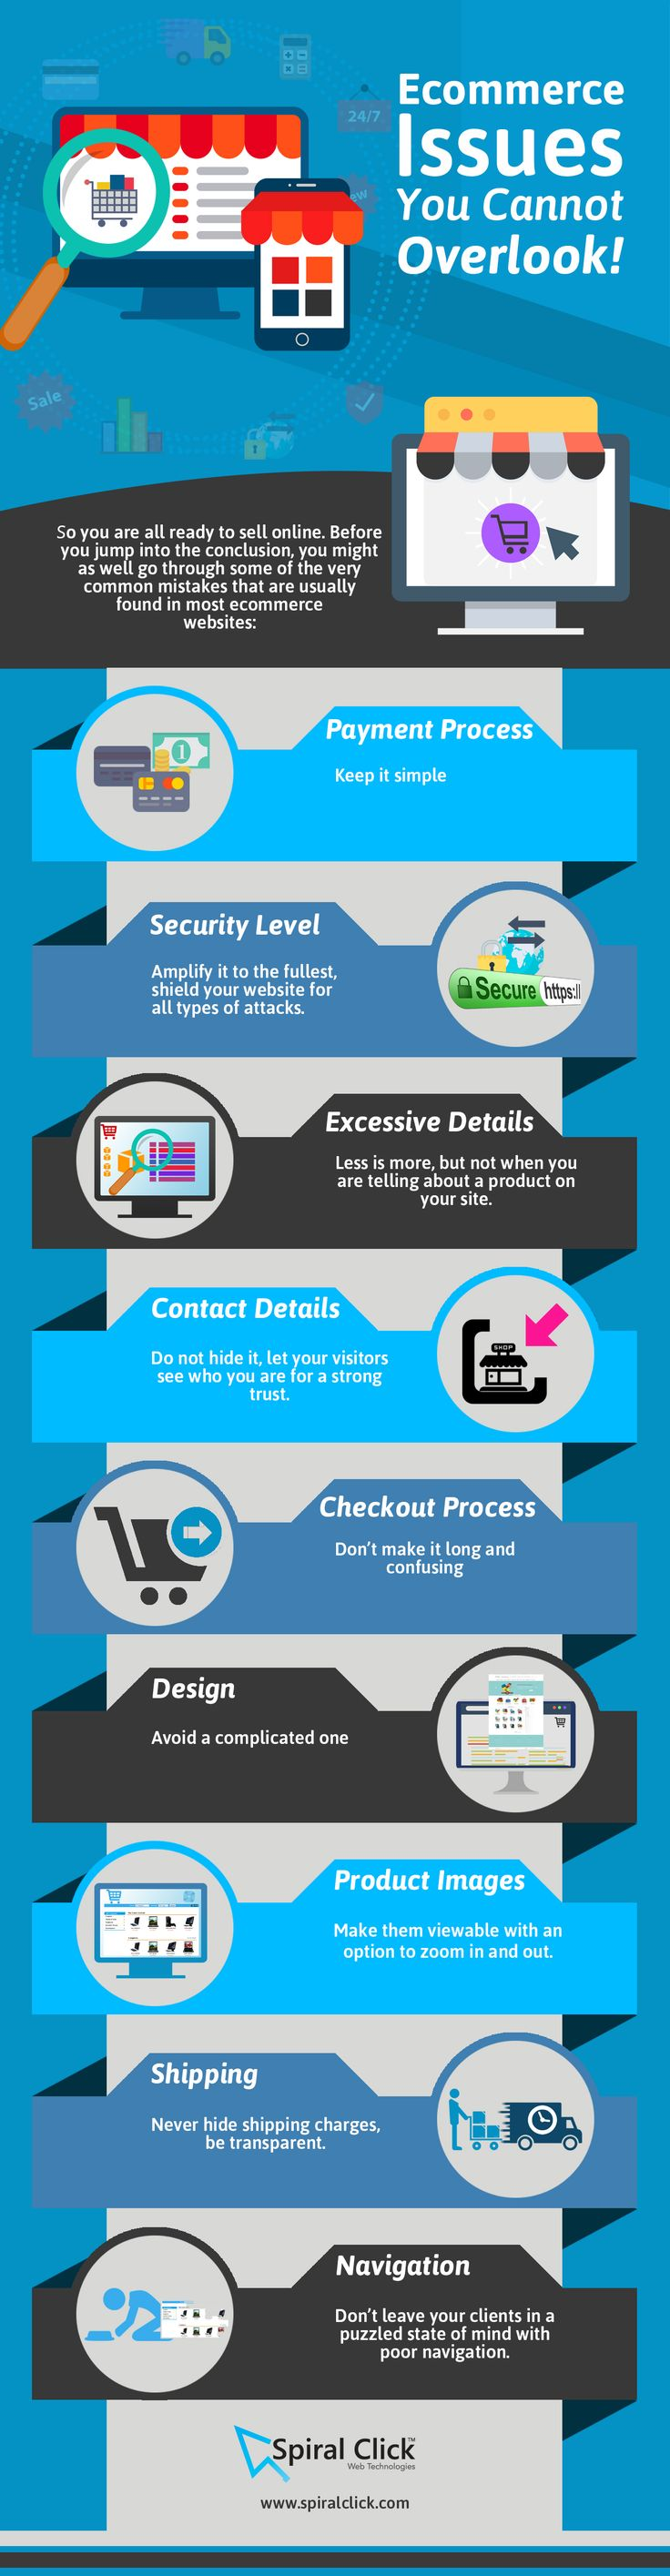 Ecommerce Issues You Cannot Overlook! -  Ecommerce Solutions Dubai